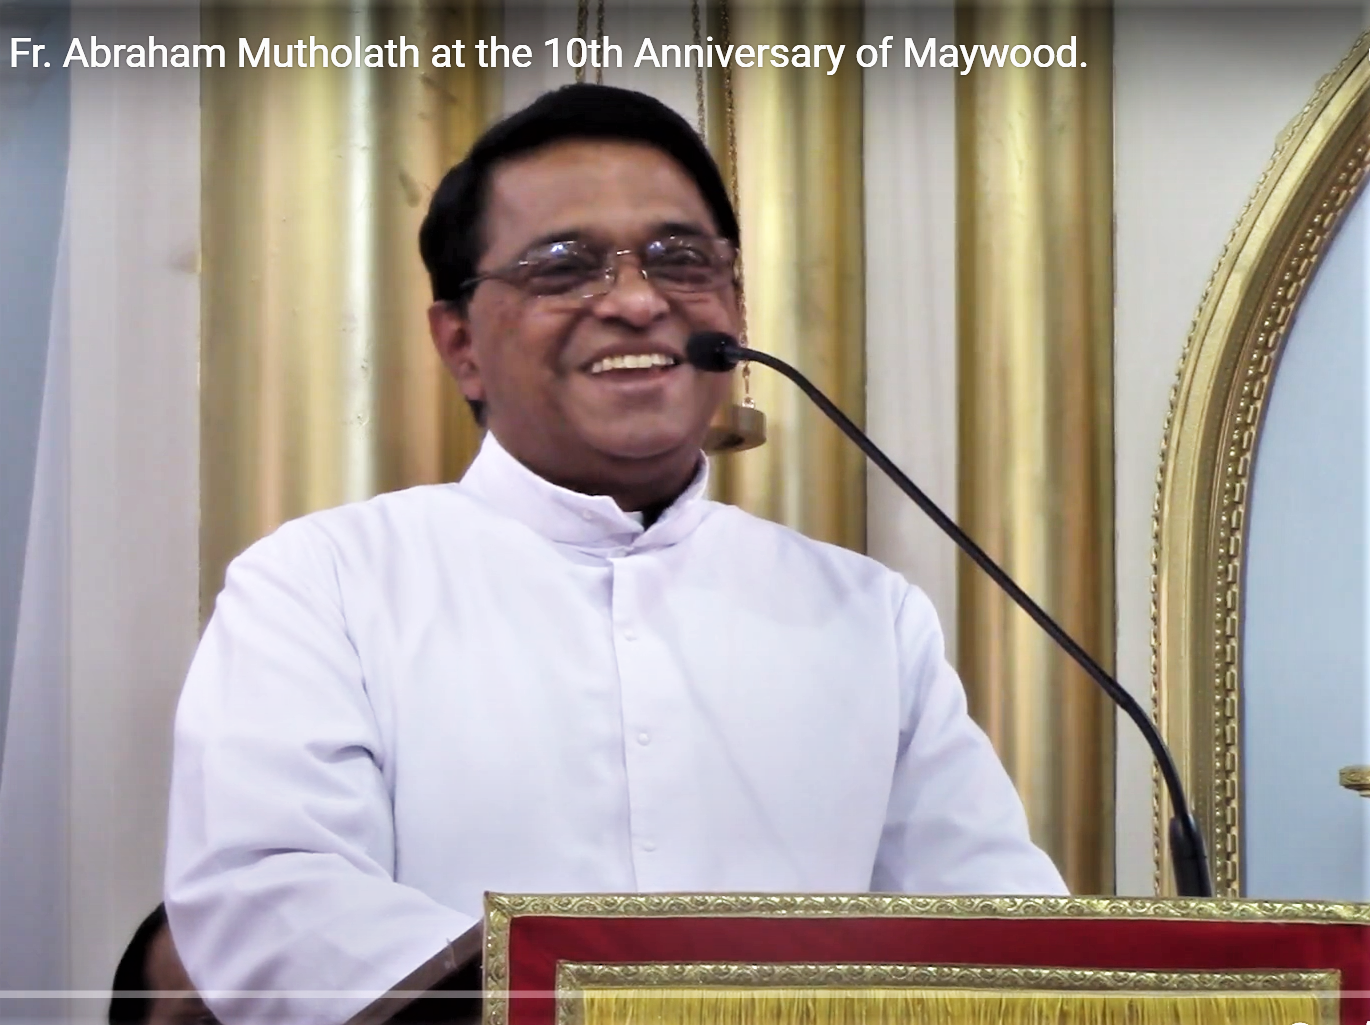 Speech by  Fr. Abraham Mutholath requesting auxiliary bishop